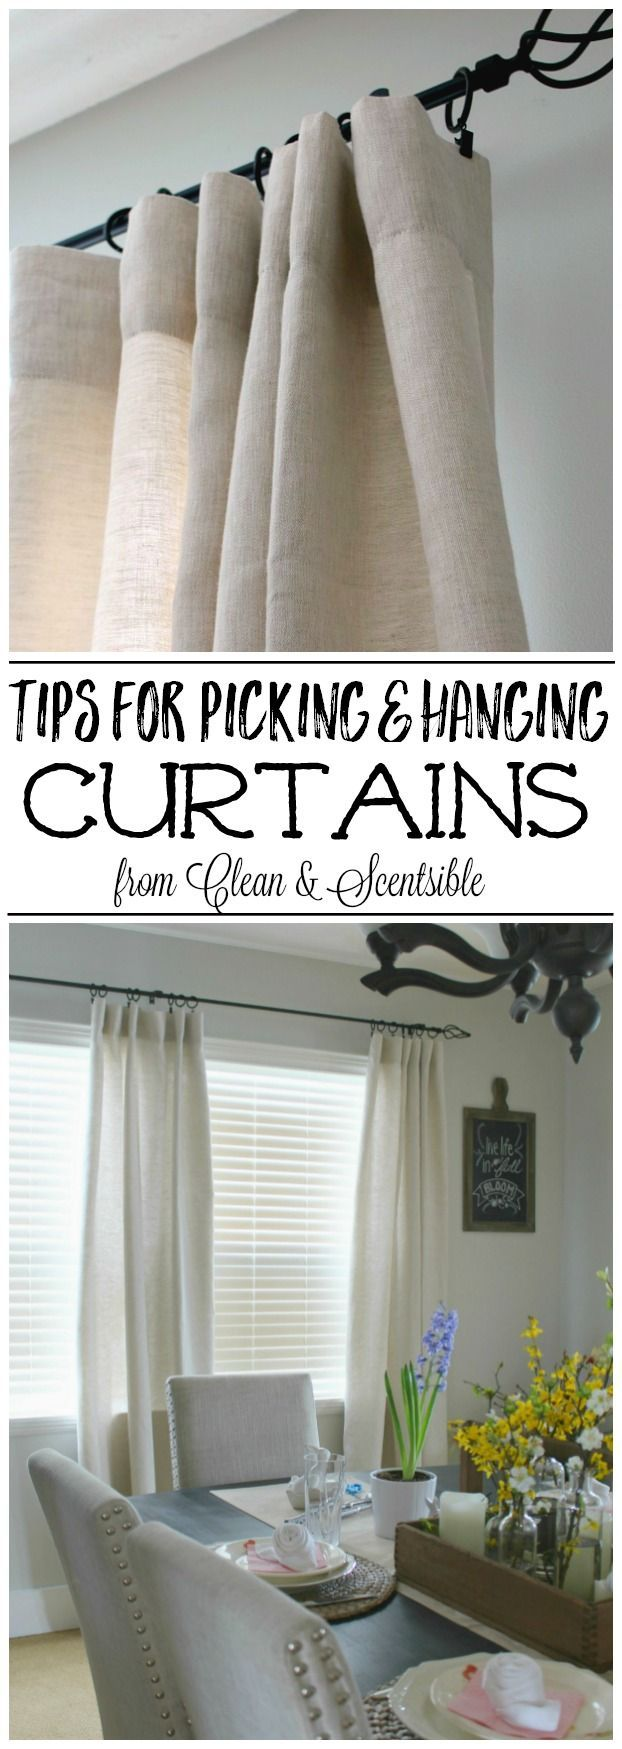 Unique curtain hanging ideas - How To Hang Curtains And Drapes